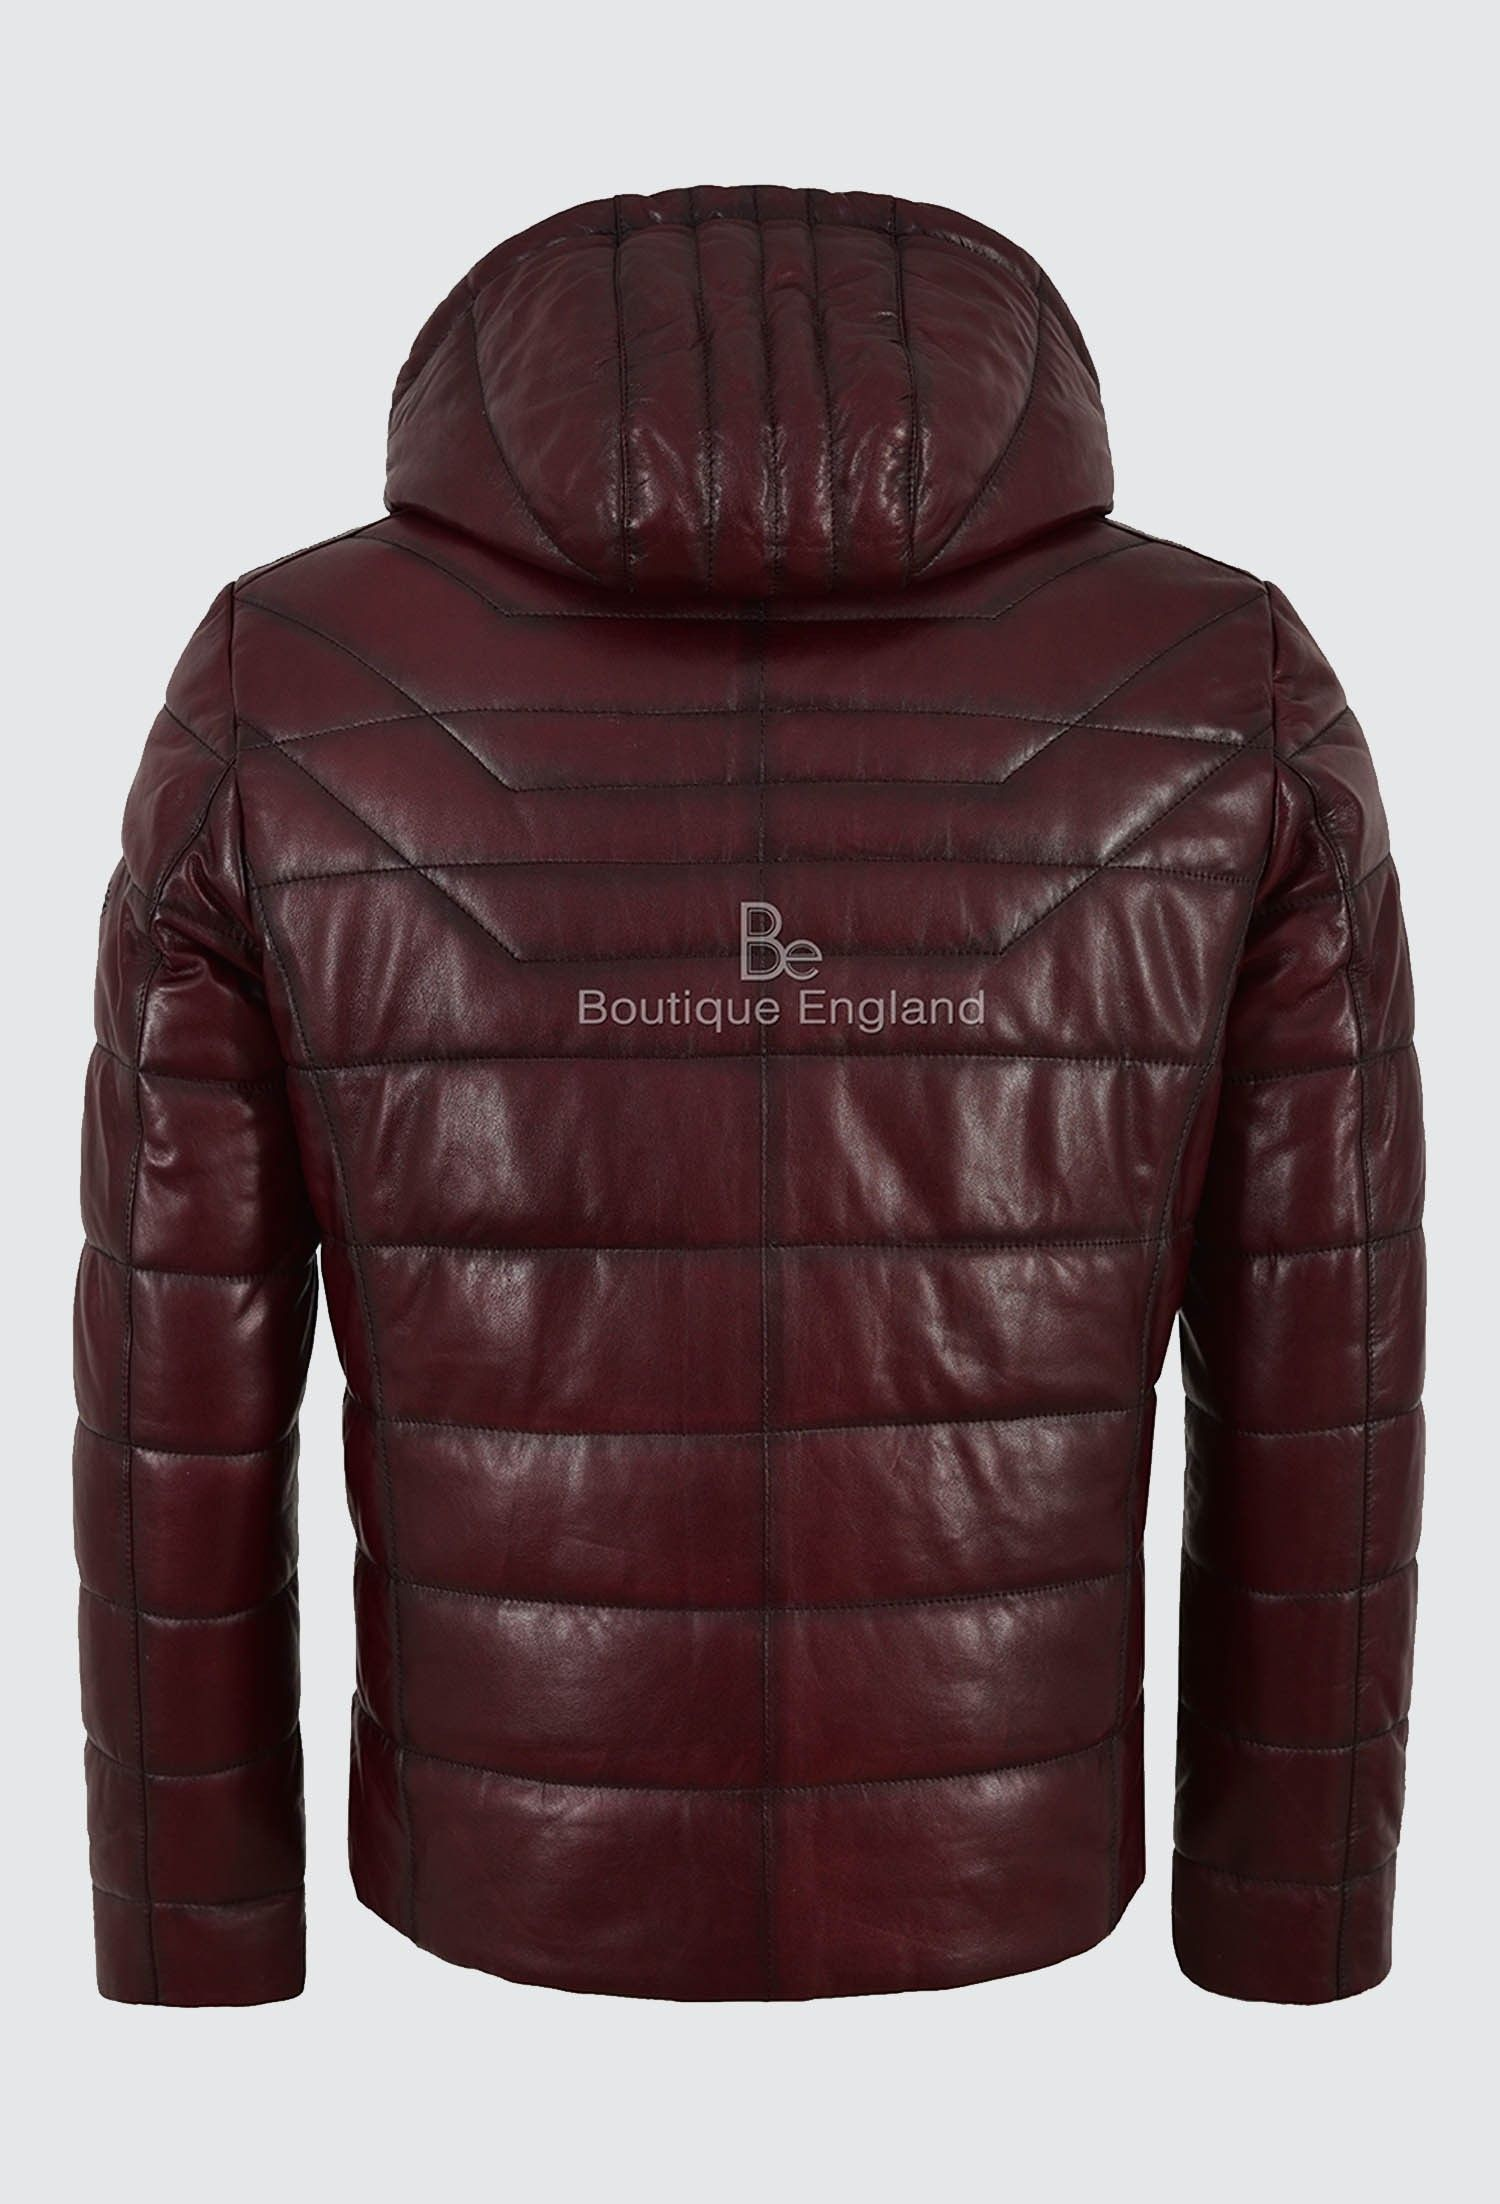 Men's Puffer Hooded Lambskin Leather Jacket Cherry Real